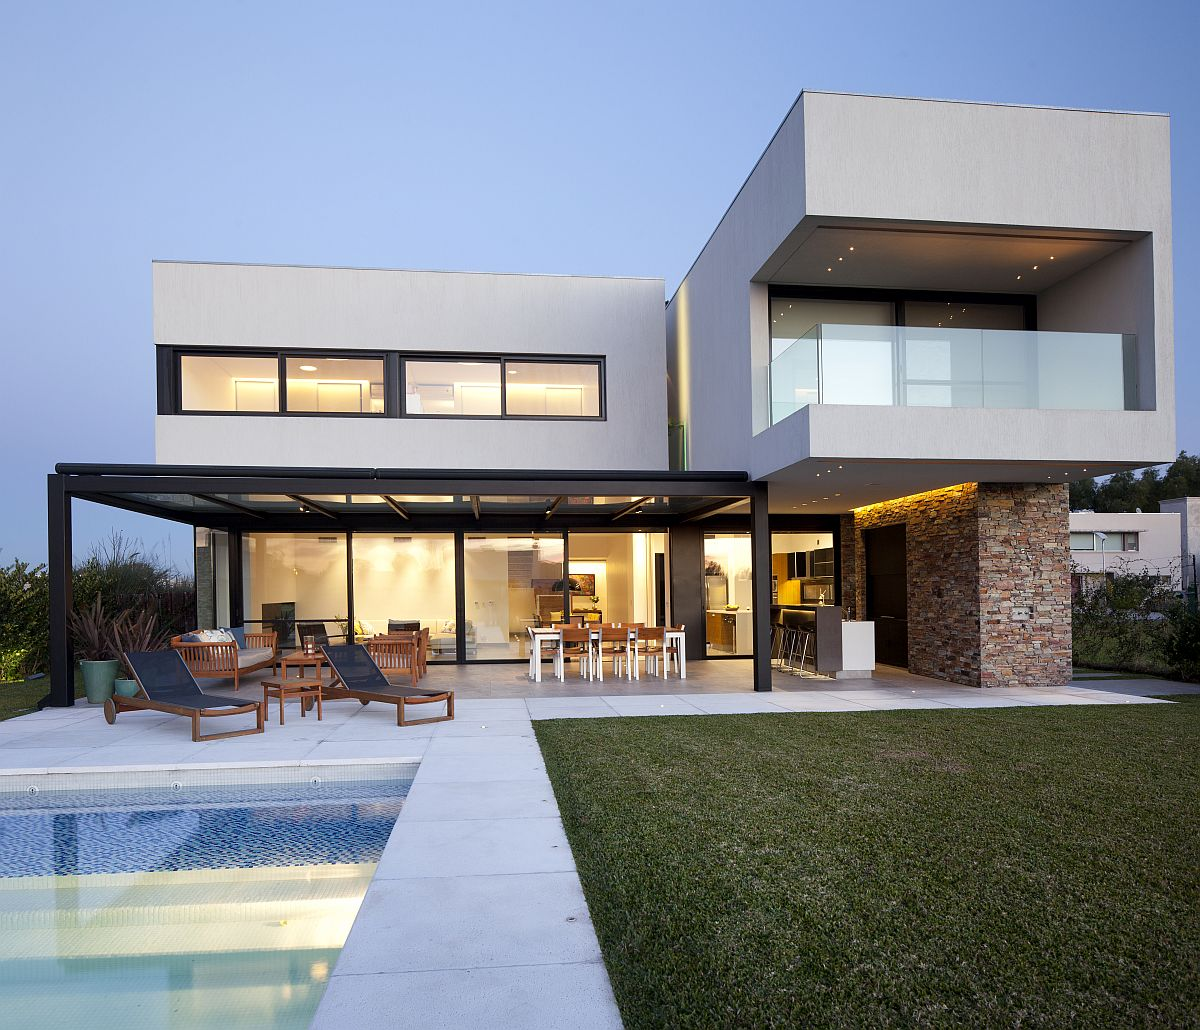 Fabulous-pool-area-and-garden-of-the-Contemporary-home-in-Argentina-18924